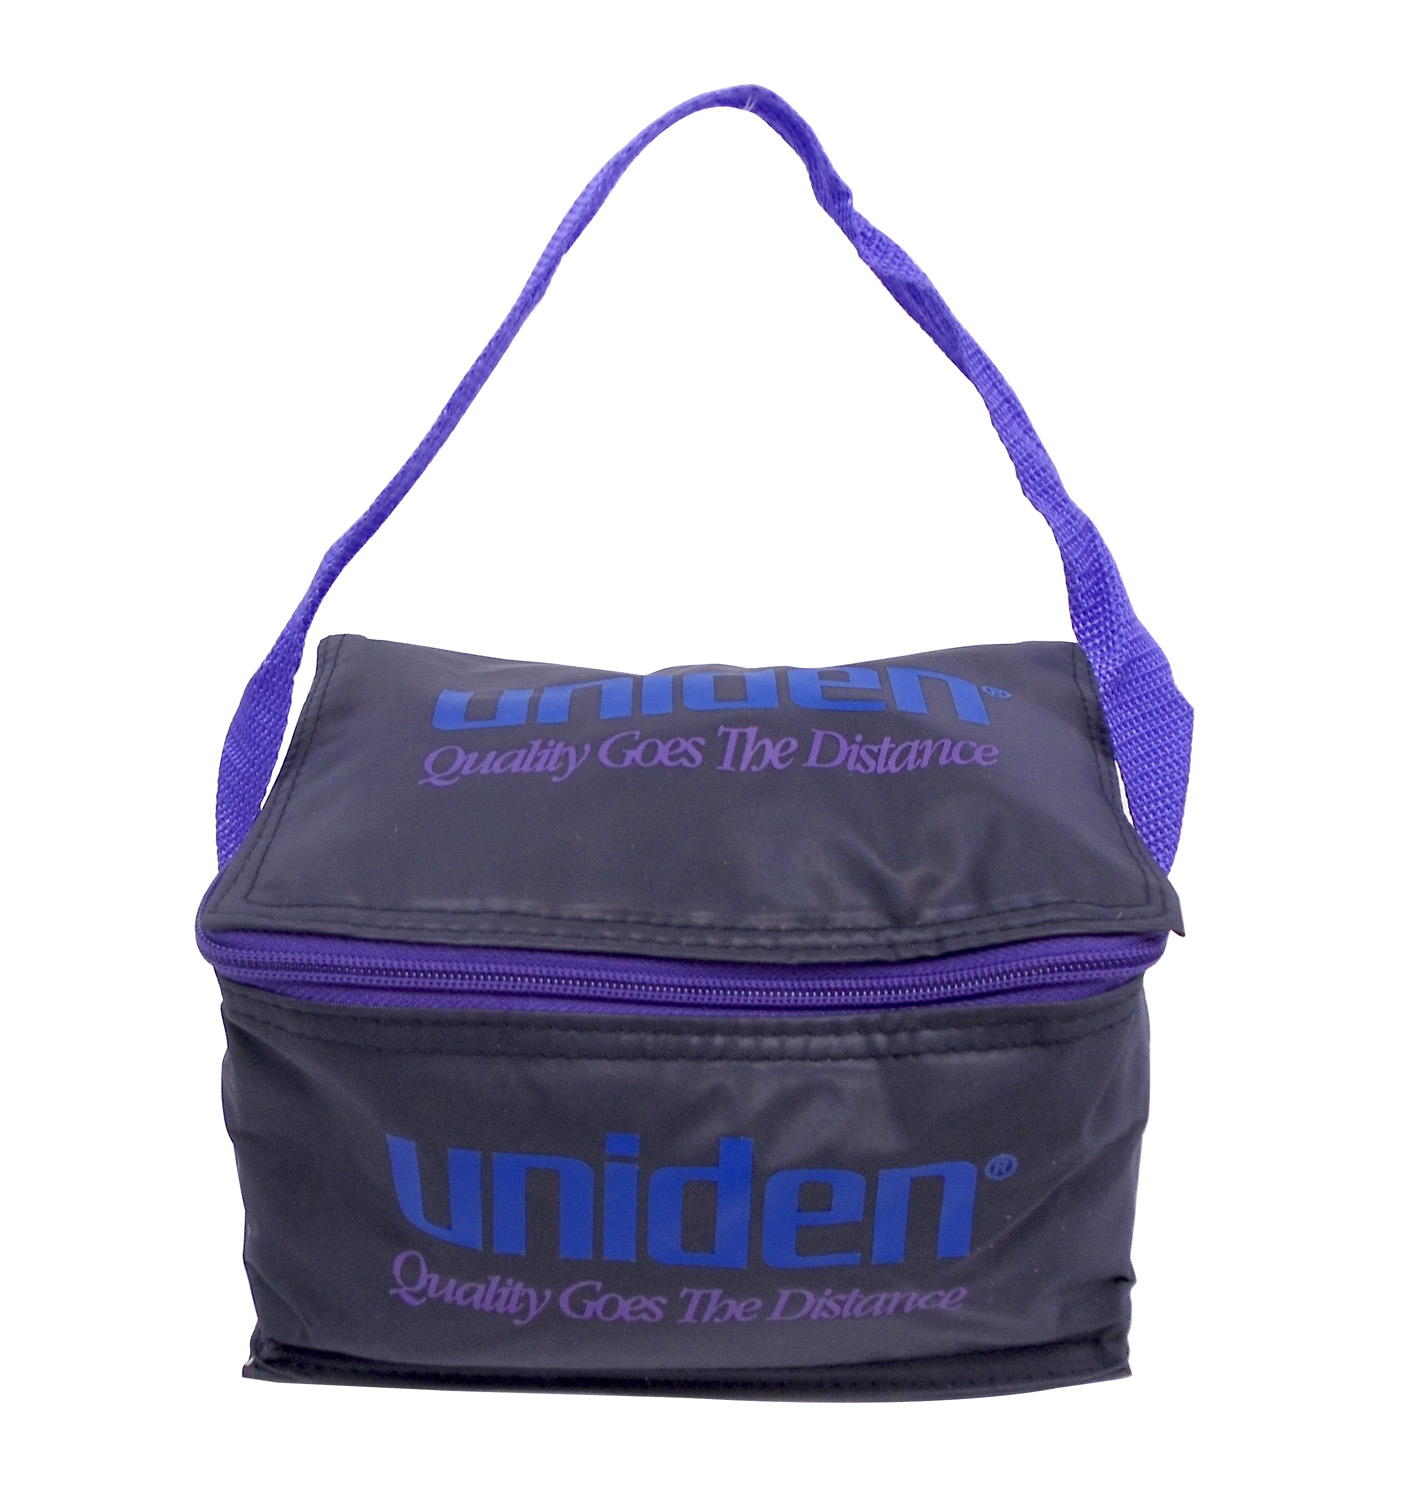 """UNIBOX - UNIDEN - SMALL NYLON CARRY BAG WITH SIGNATURE LOGO, APPROXIMATE DIMENSIONS 8"""" LONG X 5"""" WIDE X 4.5"""" TALL"""